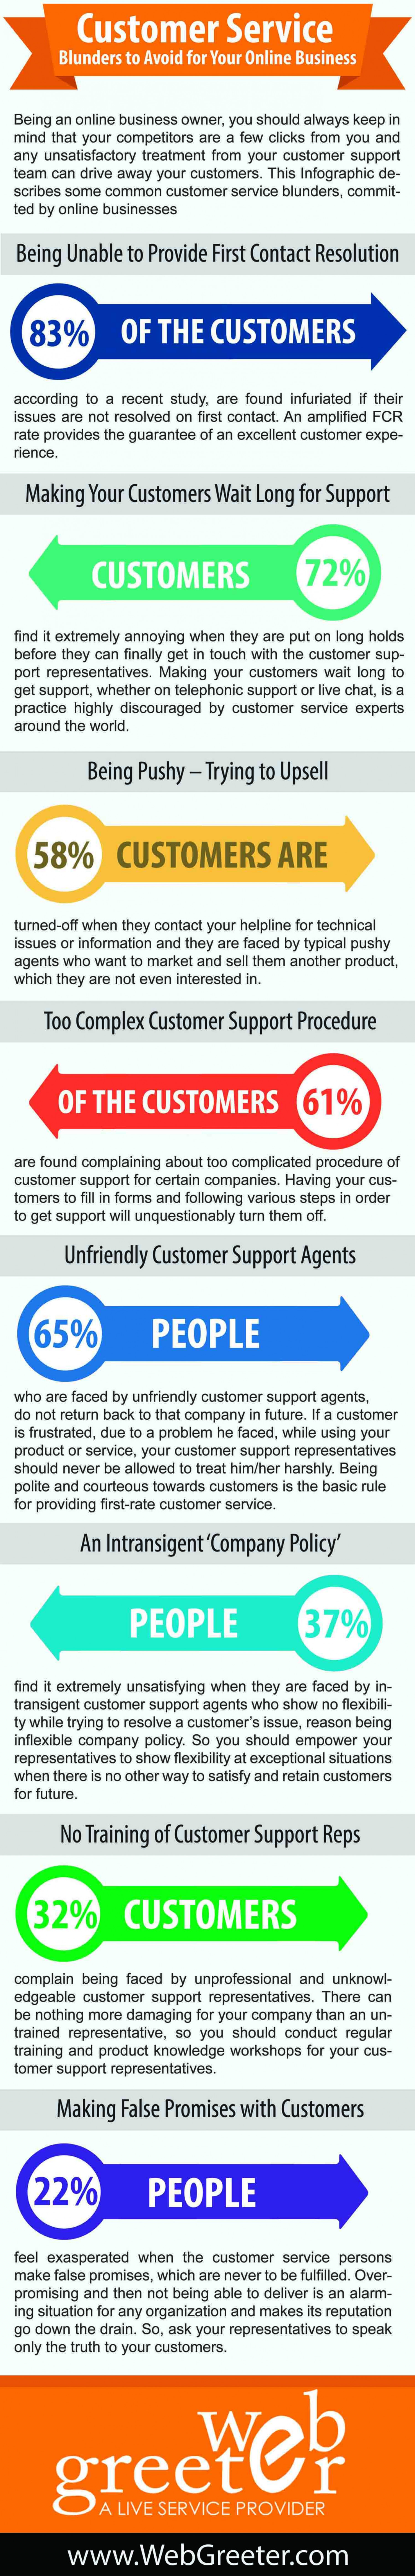 Customer Service Blunders to Avoid for Your Online Business Infographic